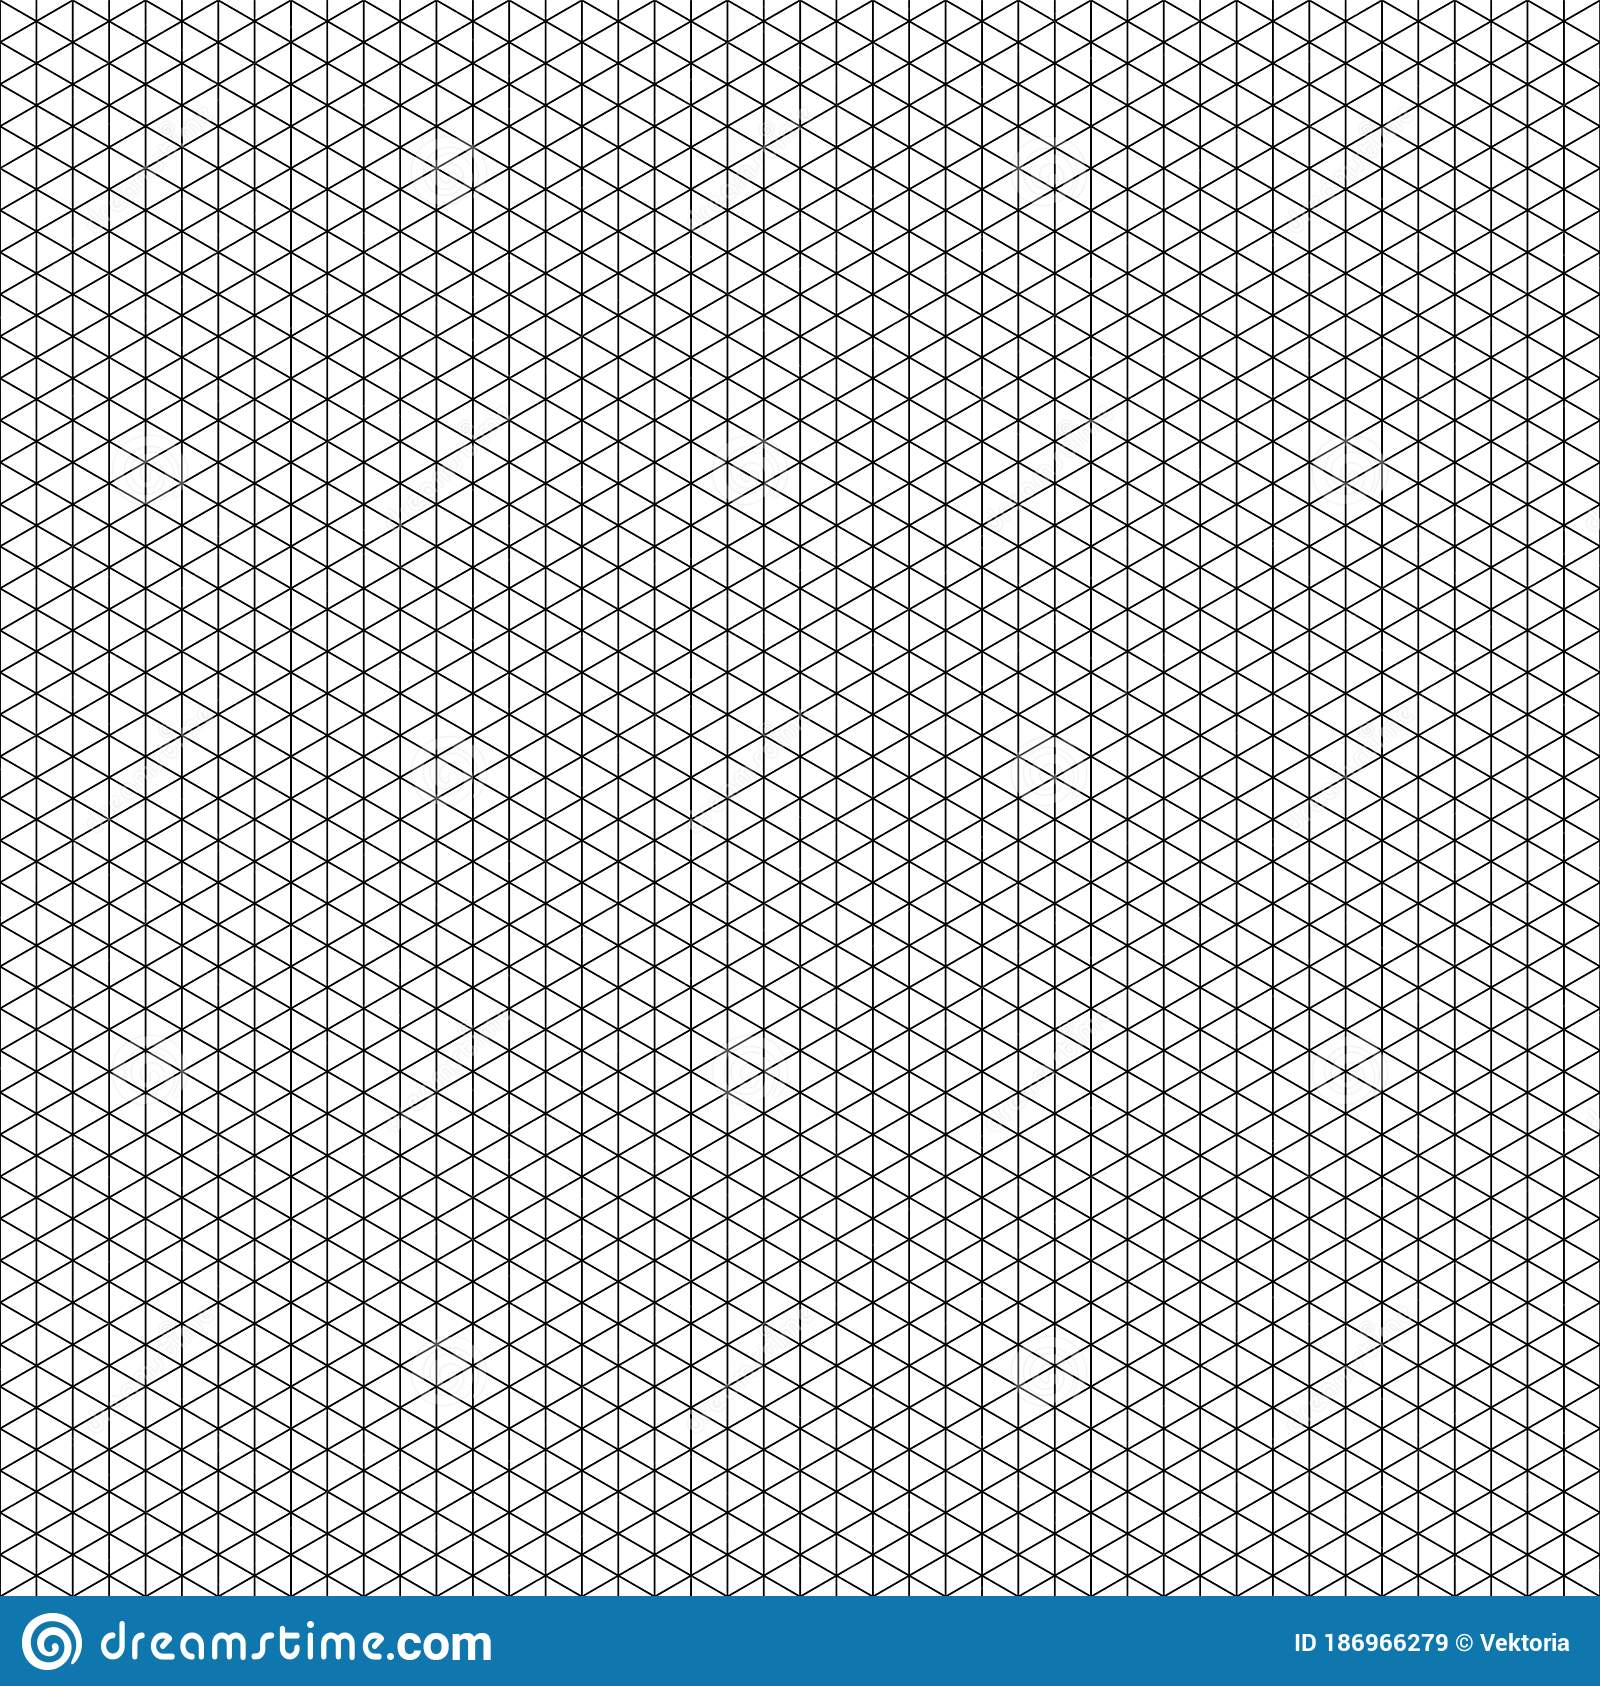 Isometric Projection Grid Background 3d Solid Illustration